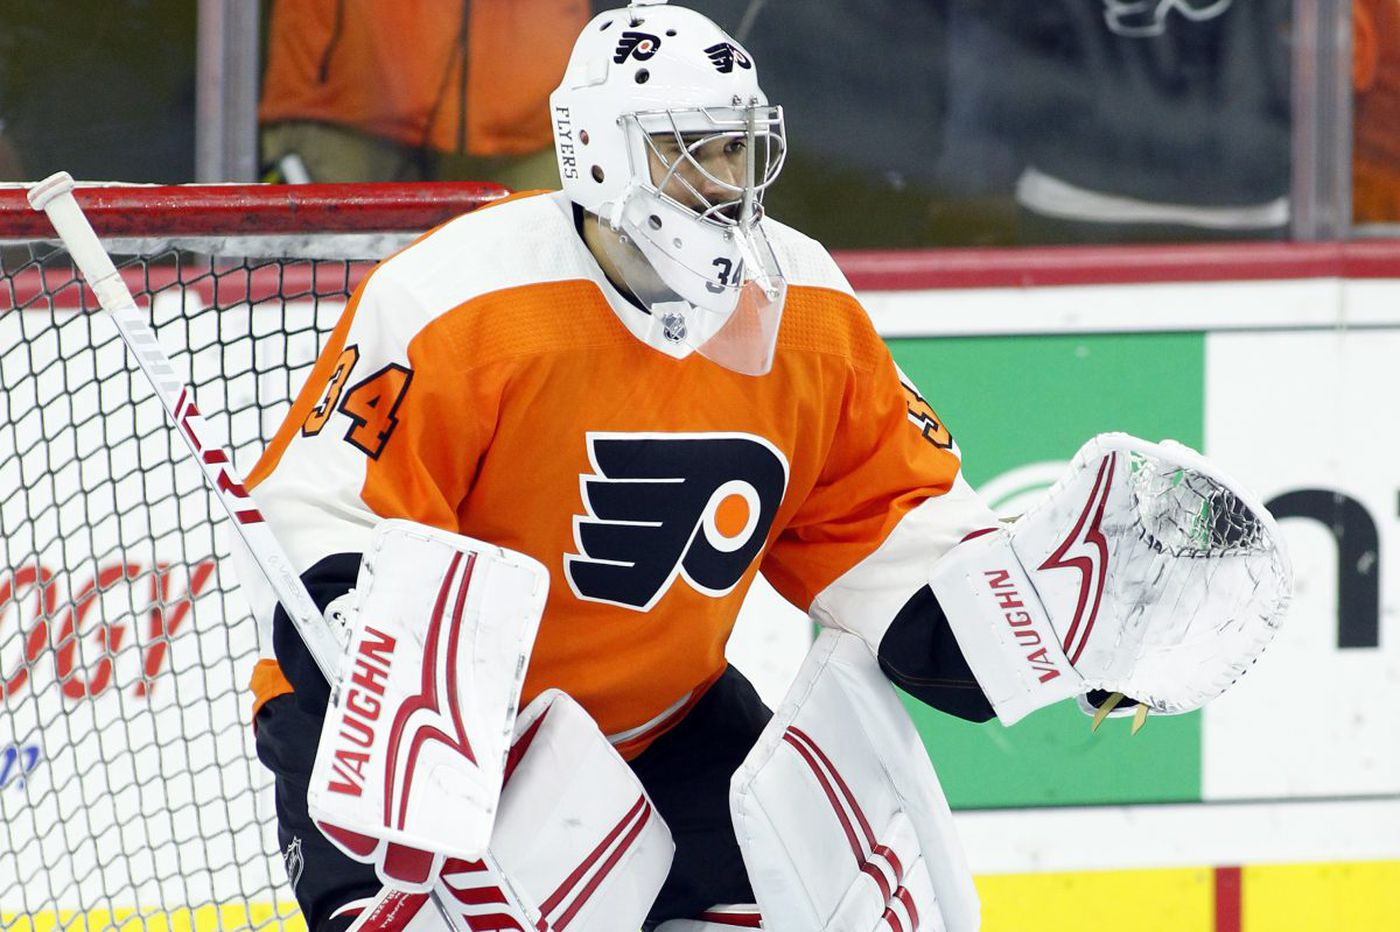 Flyers-Blue Jackets preview: Goalie Petr Mrazek expected to make his Philly debut